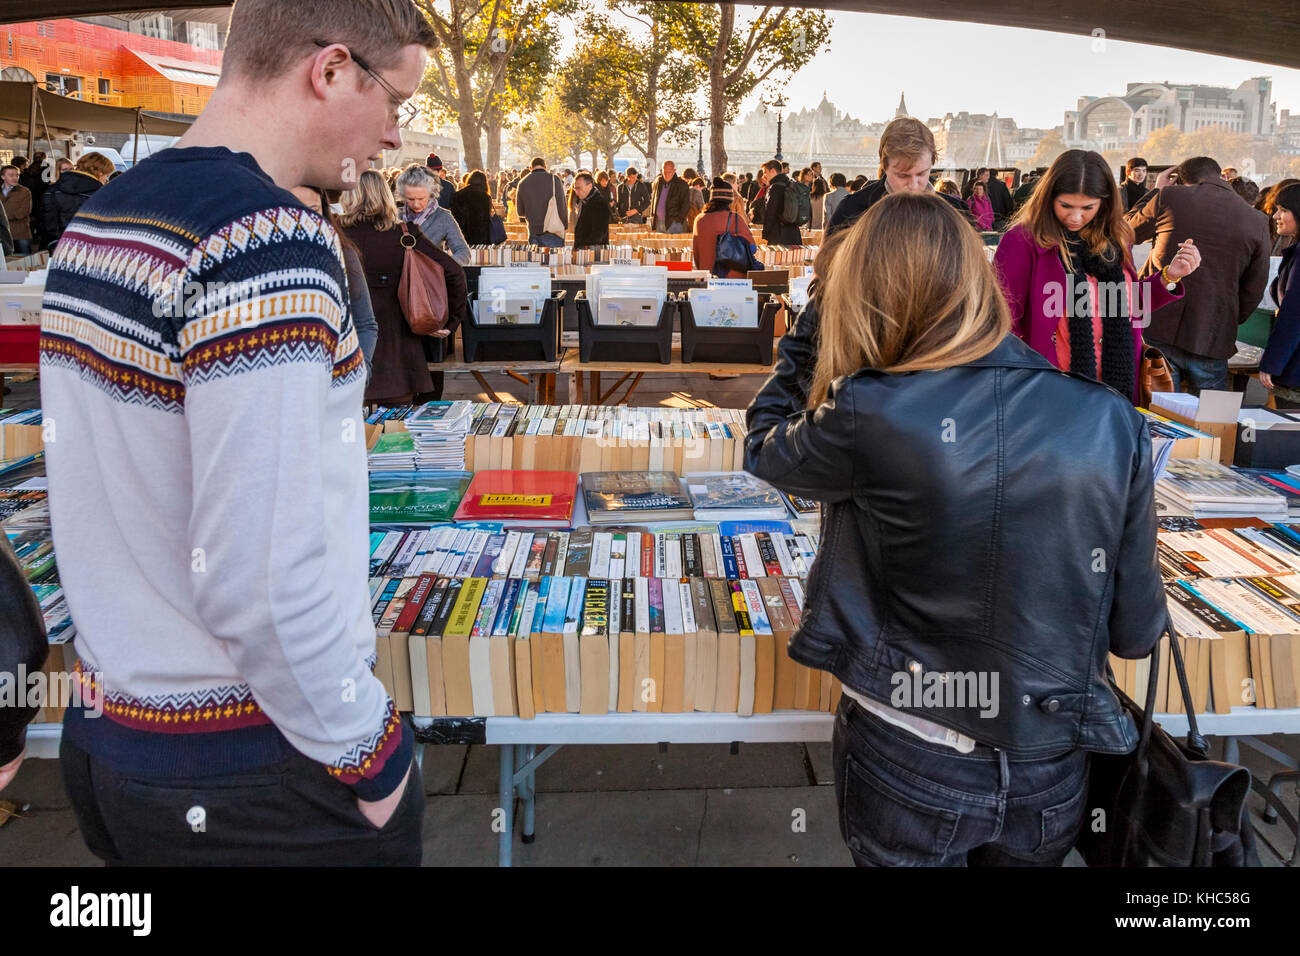 People looking at second hand books for sale at the book market underneath Waterloo Bridge, London, England, UK - Stock Image